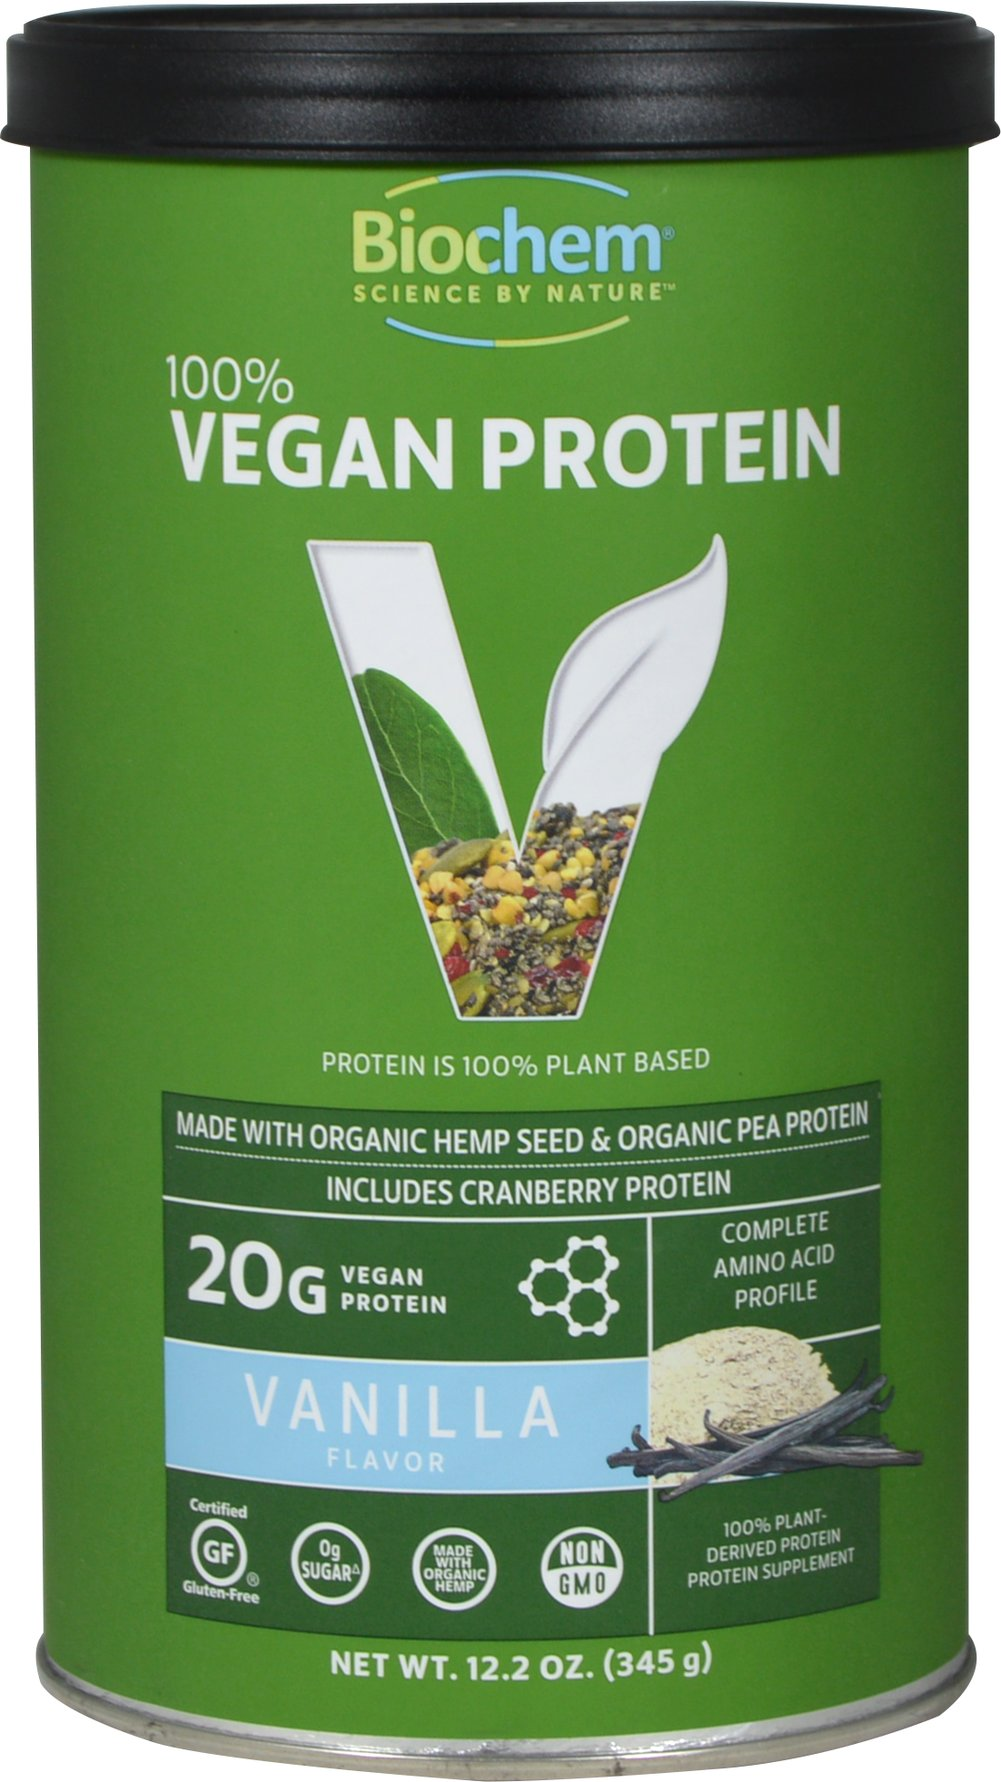 Vegan Protein Vanilla <p><strong>From the Manufacturer's Label</strong></p><p>Lactose Free</p><p>Totally Vegan</p><p>Wheat & Gluten Free</p><p>Excellent Source of Protein</p><p></p><p>100% Vegan Protein Facts:</p><p>- Contains isolated, highly digestible pea protein, organic hemp protein, and cranberry protein.</p><p>- Pea protein is rich in amino acids such as L-Lysine,